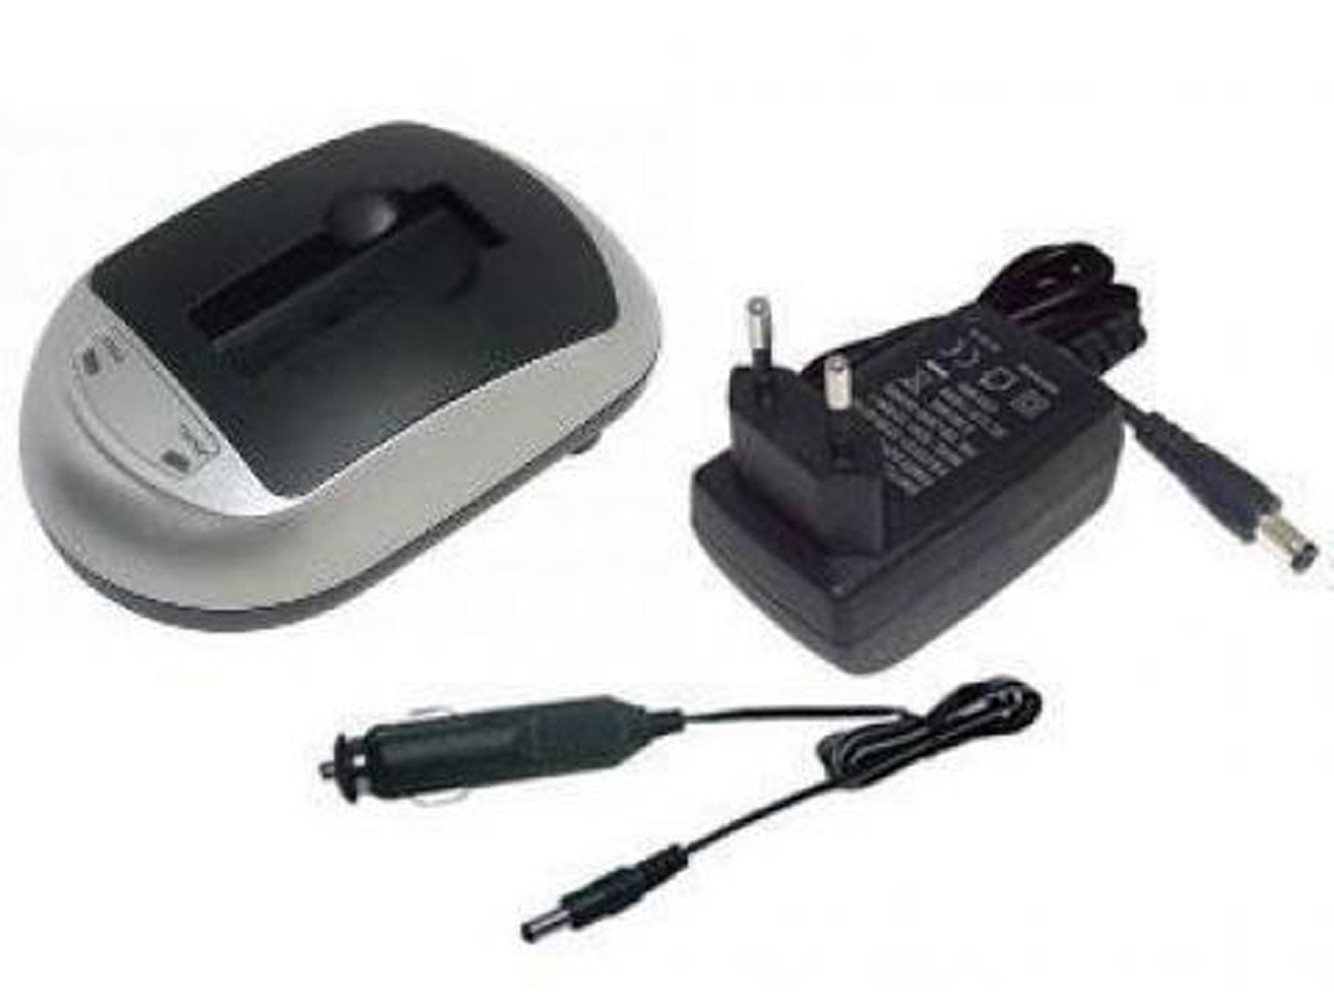 Battery Charger for SANYO Xacti VPC-A5